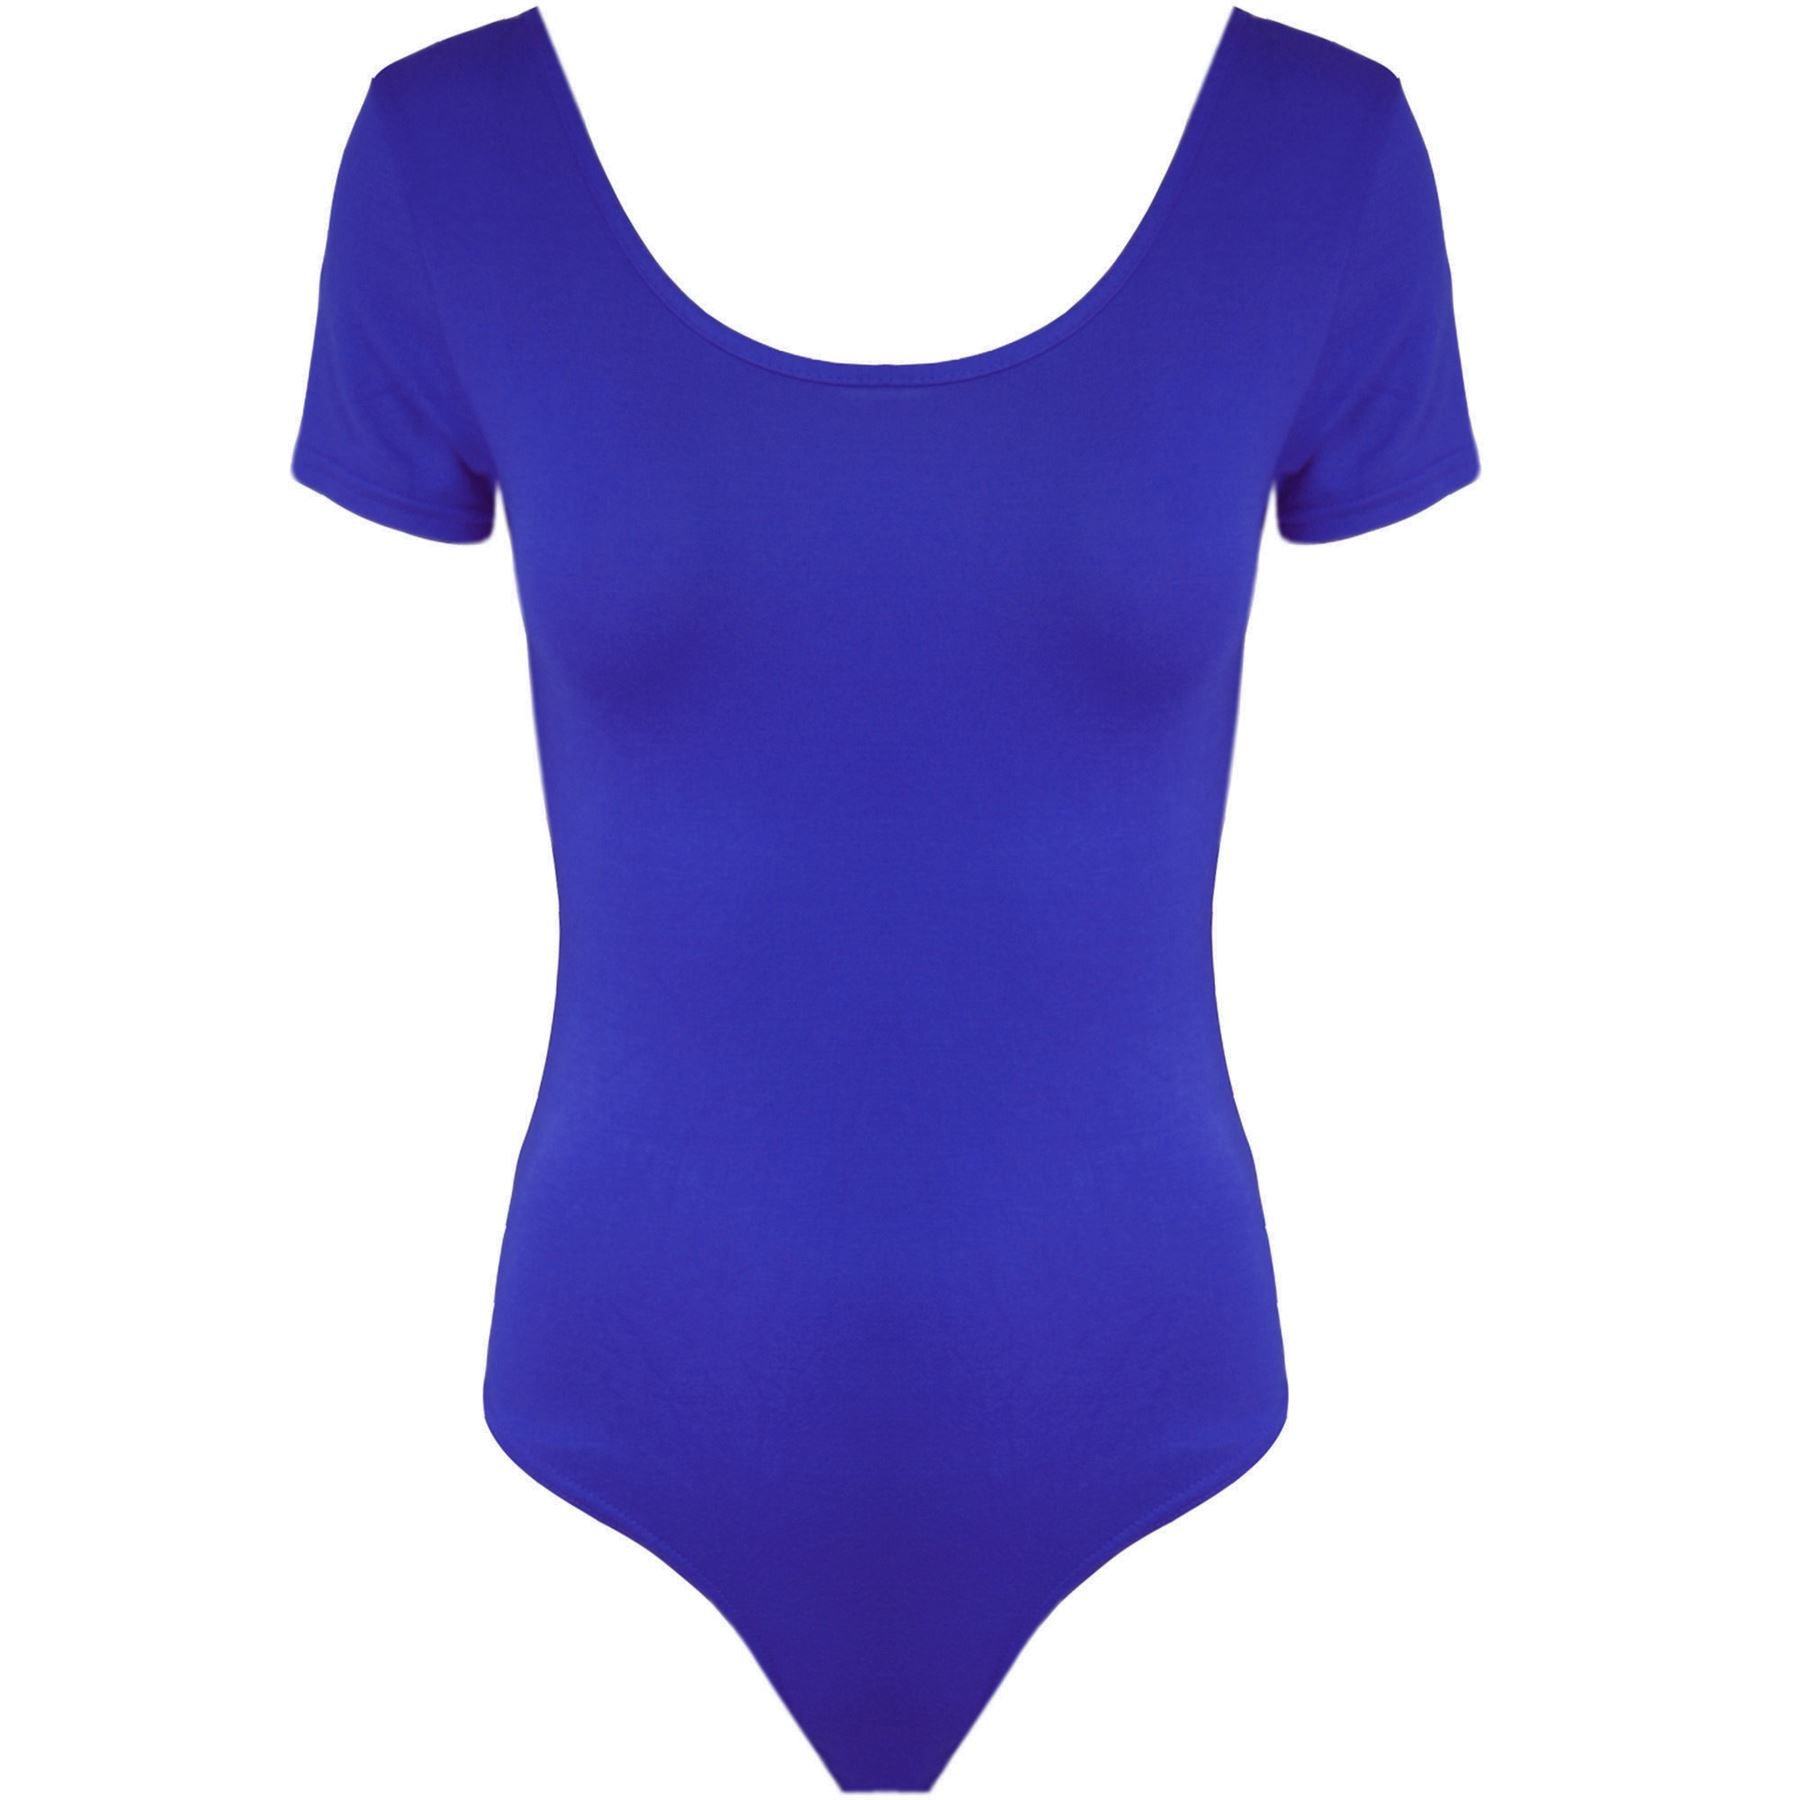 Womens-Ladies-Casual-Scoop-Neck-Short-Sleeve-Stretchy-Plain-Bodysuit-Leotard-Top